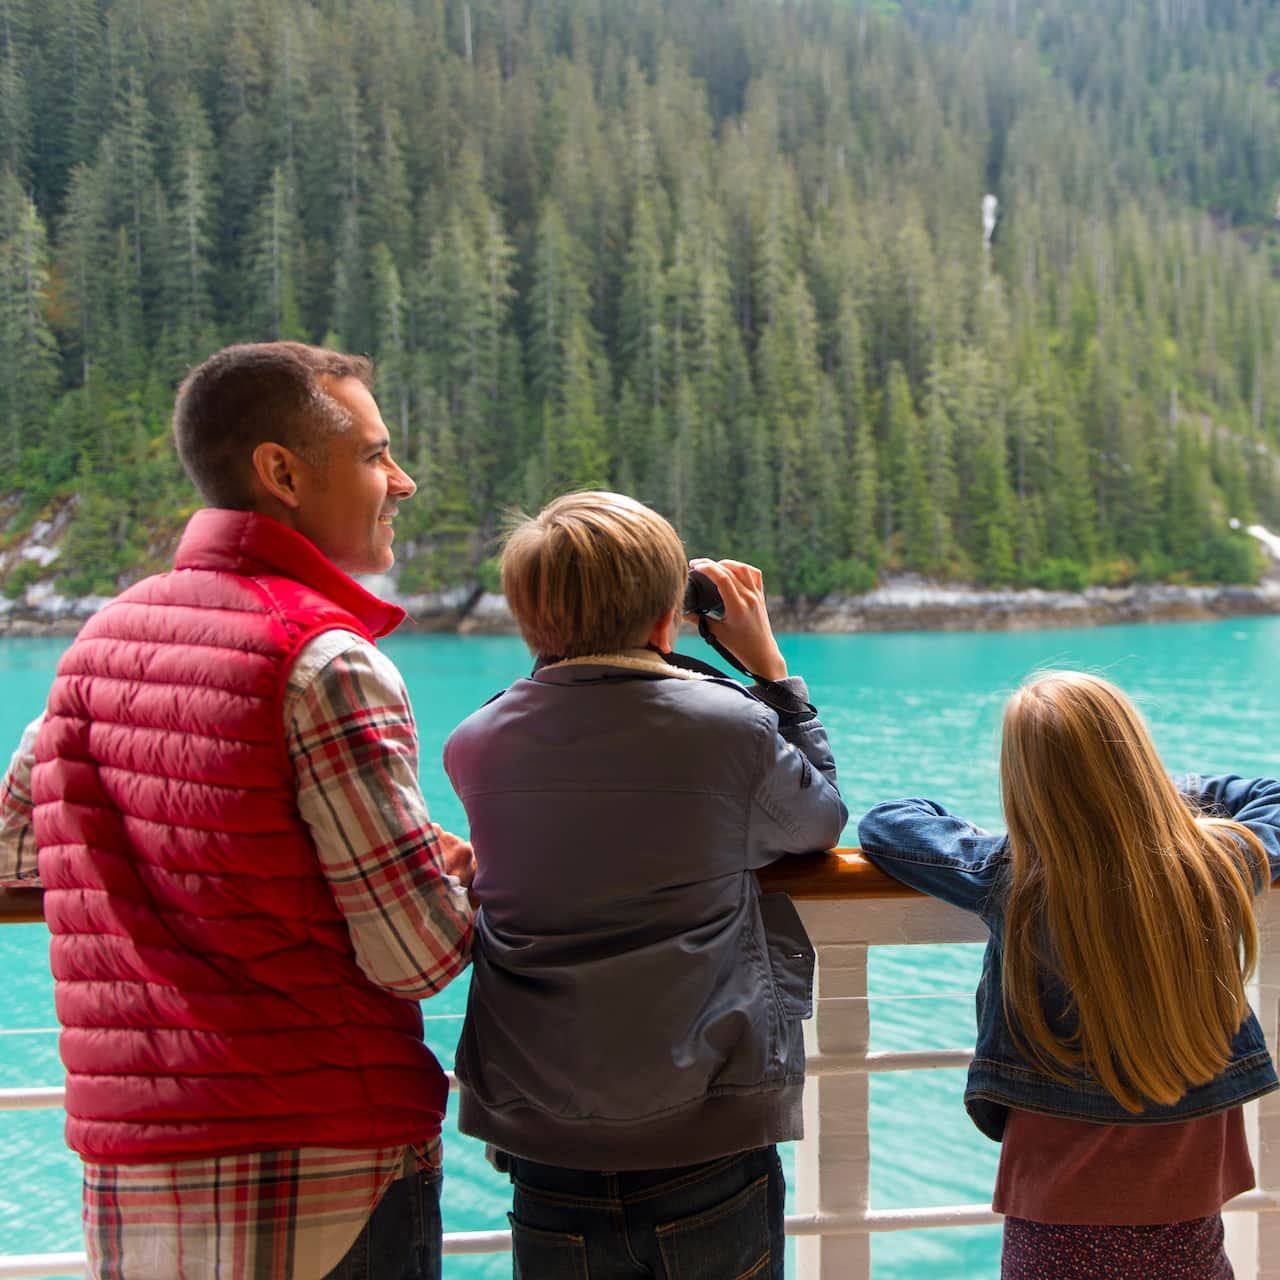 A family of 4 looks at the tree-covered Alaskan wilderness from over a ship's railing